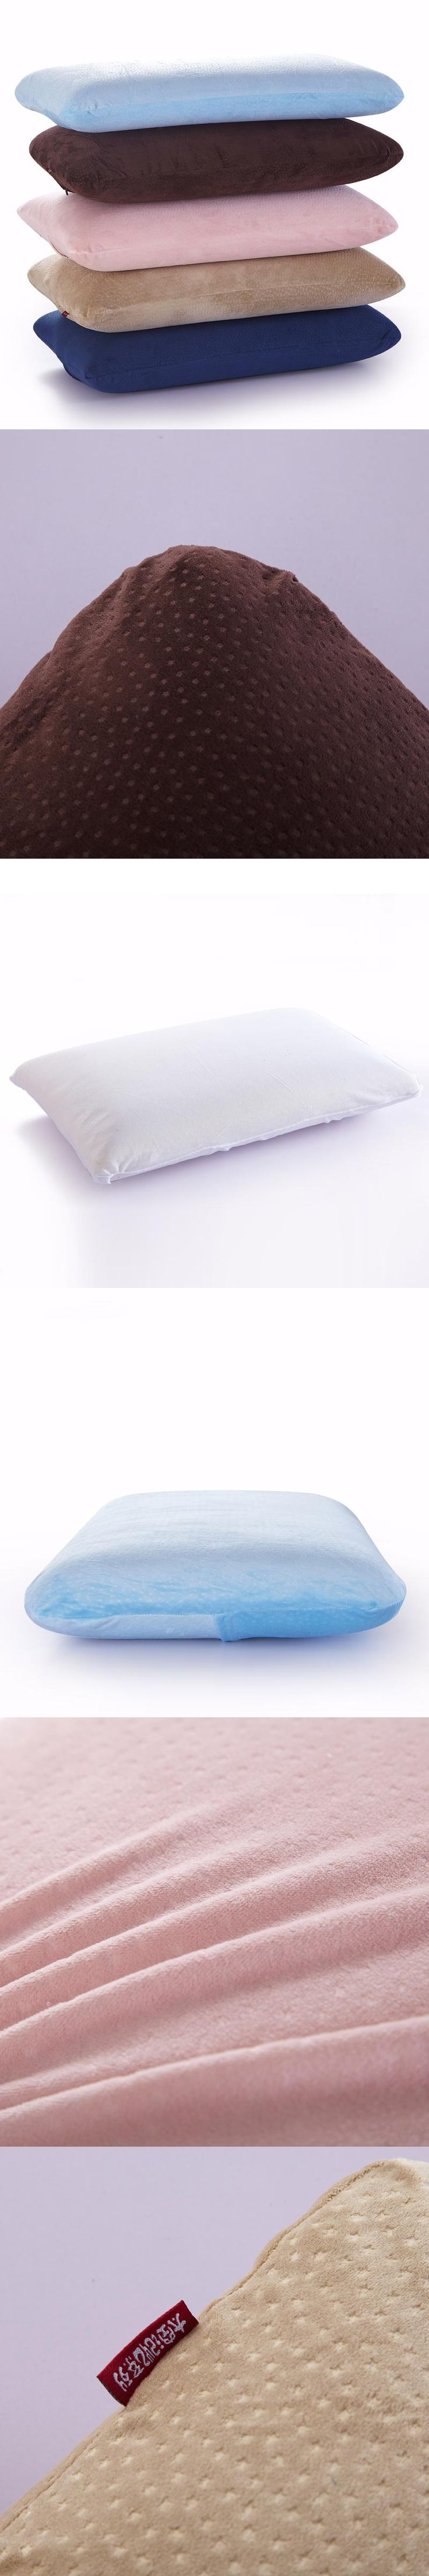 Breathable Comfort Memory Foam Pillow With Case For Kids Adults Sleeping  Quality Bed Pillows Bed Rest